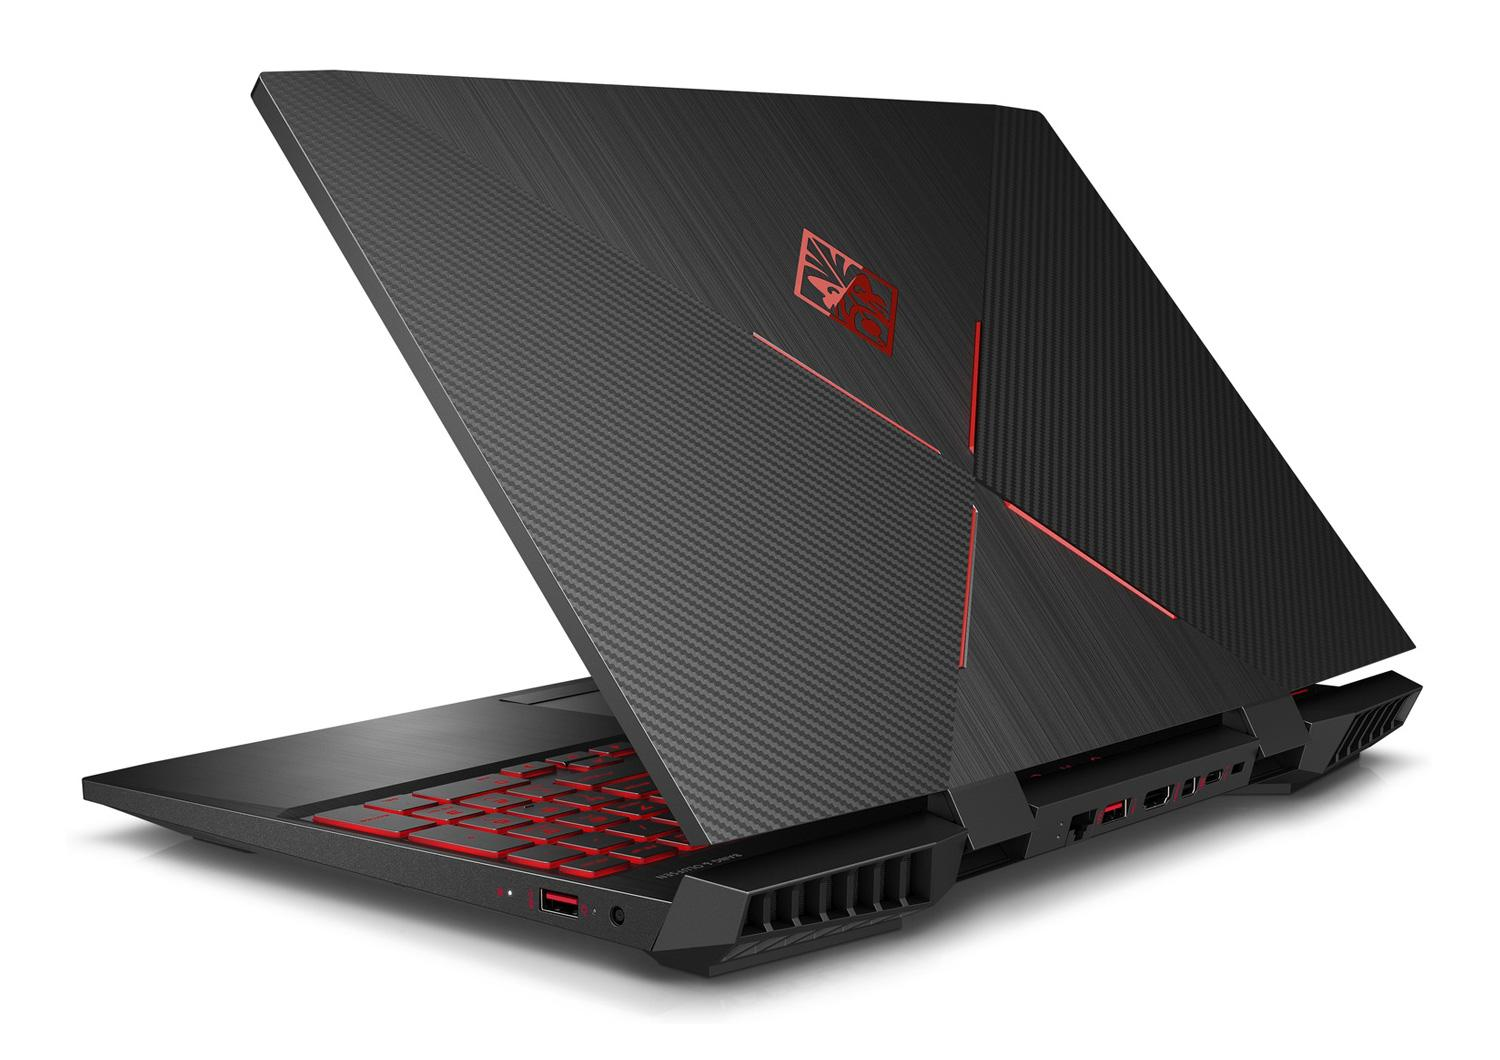 Ordinateur portable HP Omen 15-dc1002nf - RTX 2060 Turing, IPS 144Hz - photo 3